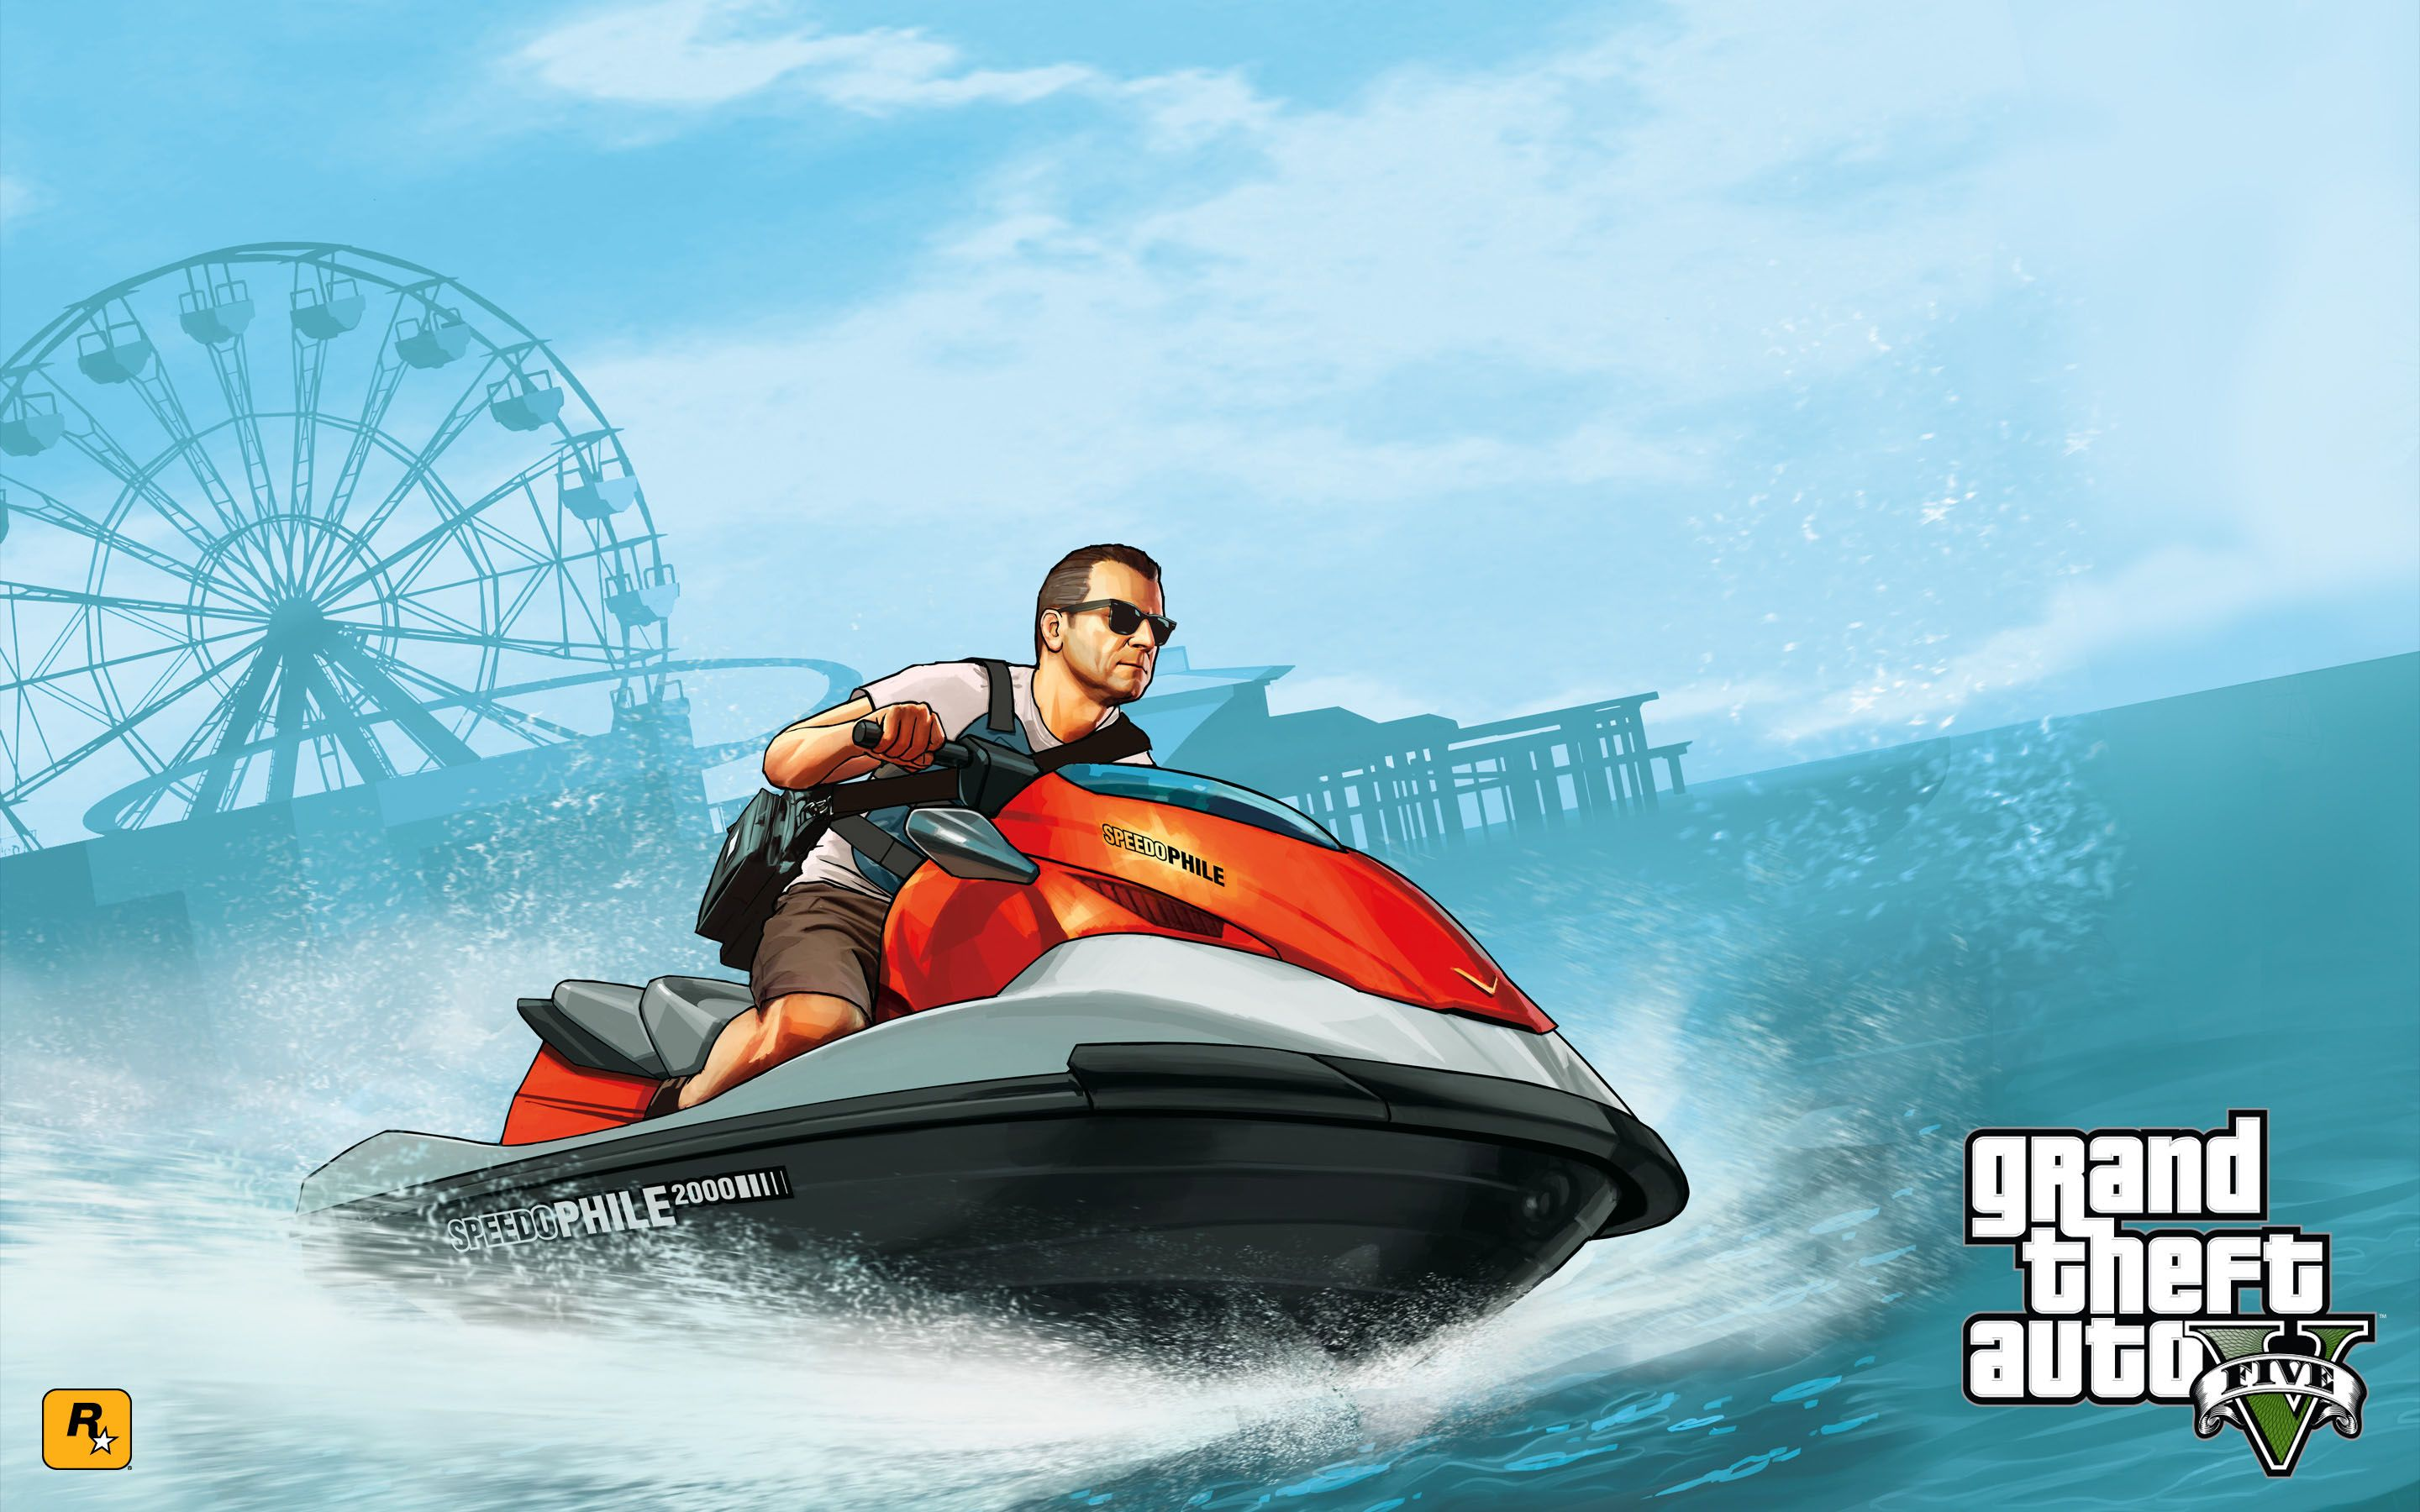 GTA 5 - Michael riding a jet ski 2880x1800 wallpaper